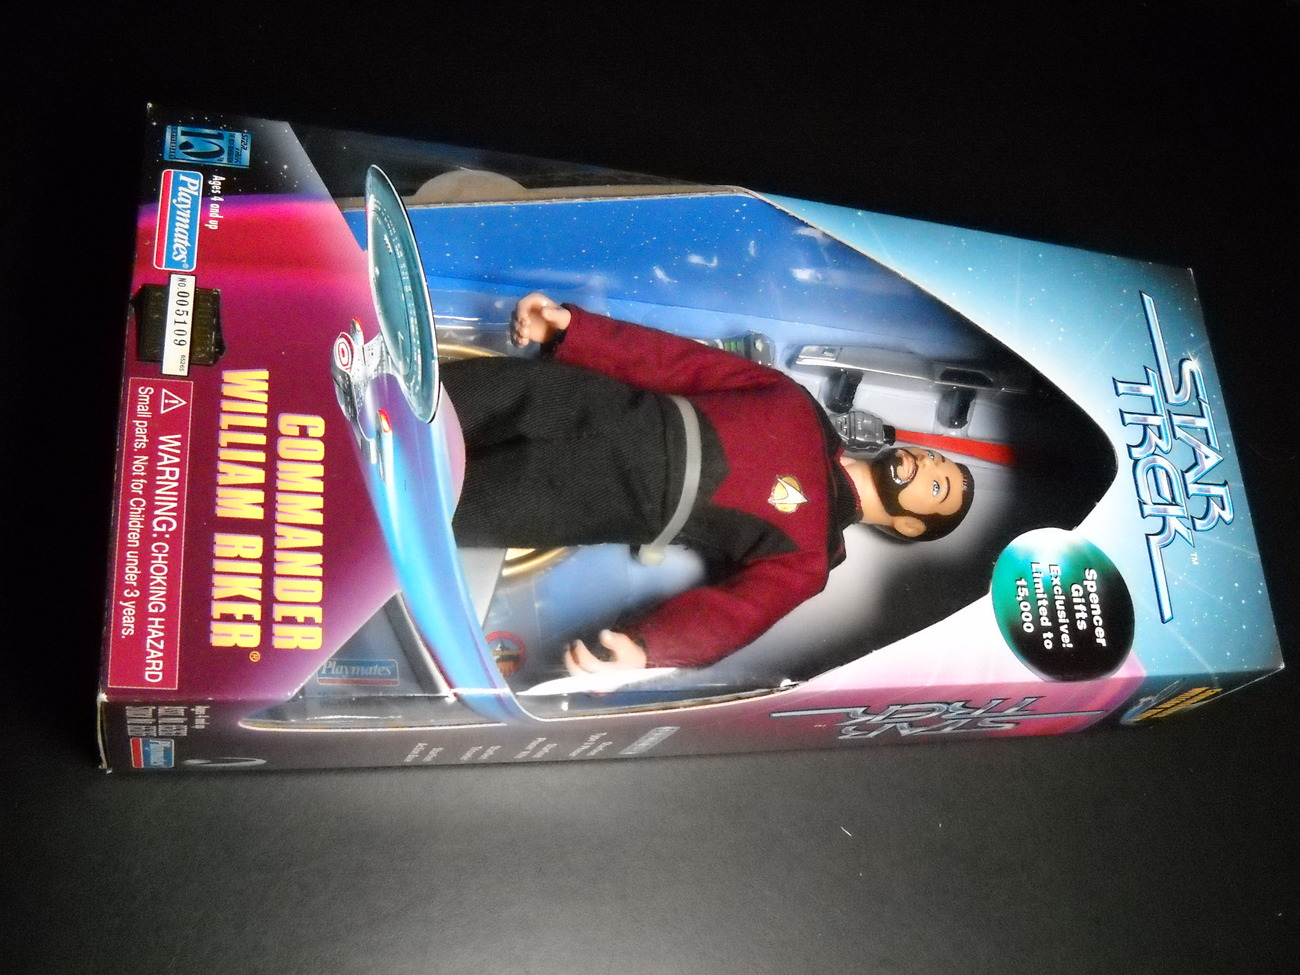 Toy star trek playmates spencer gifts exclusive commander william riker 1997 9 inch boxed sealed 01